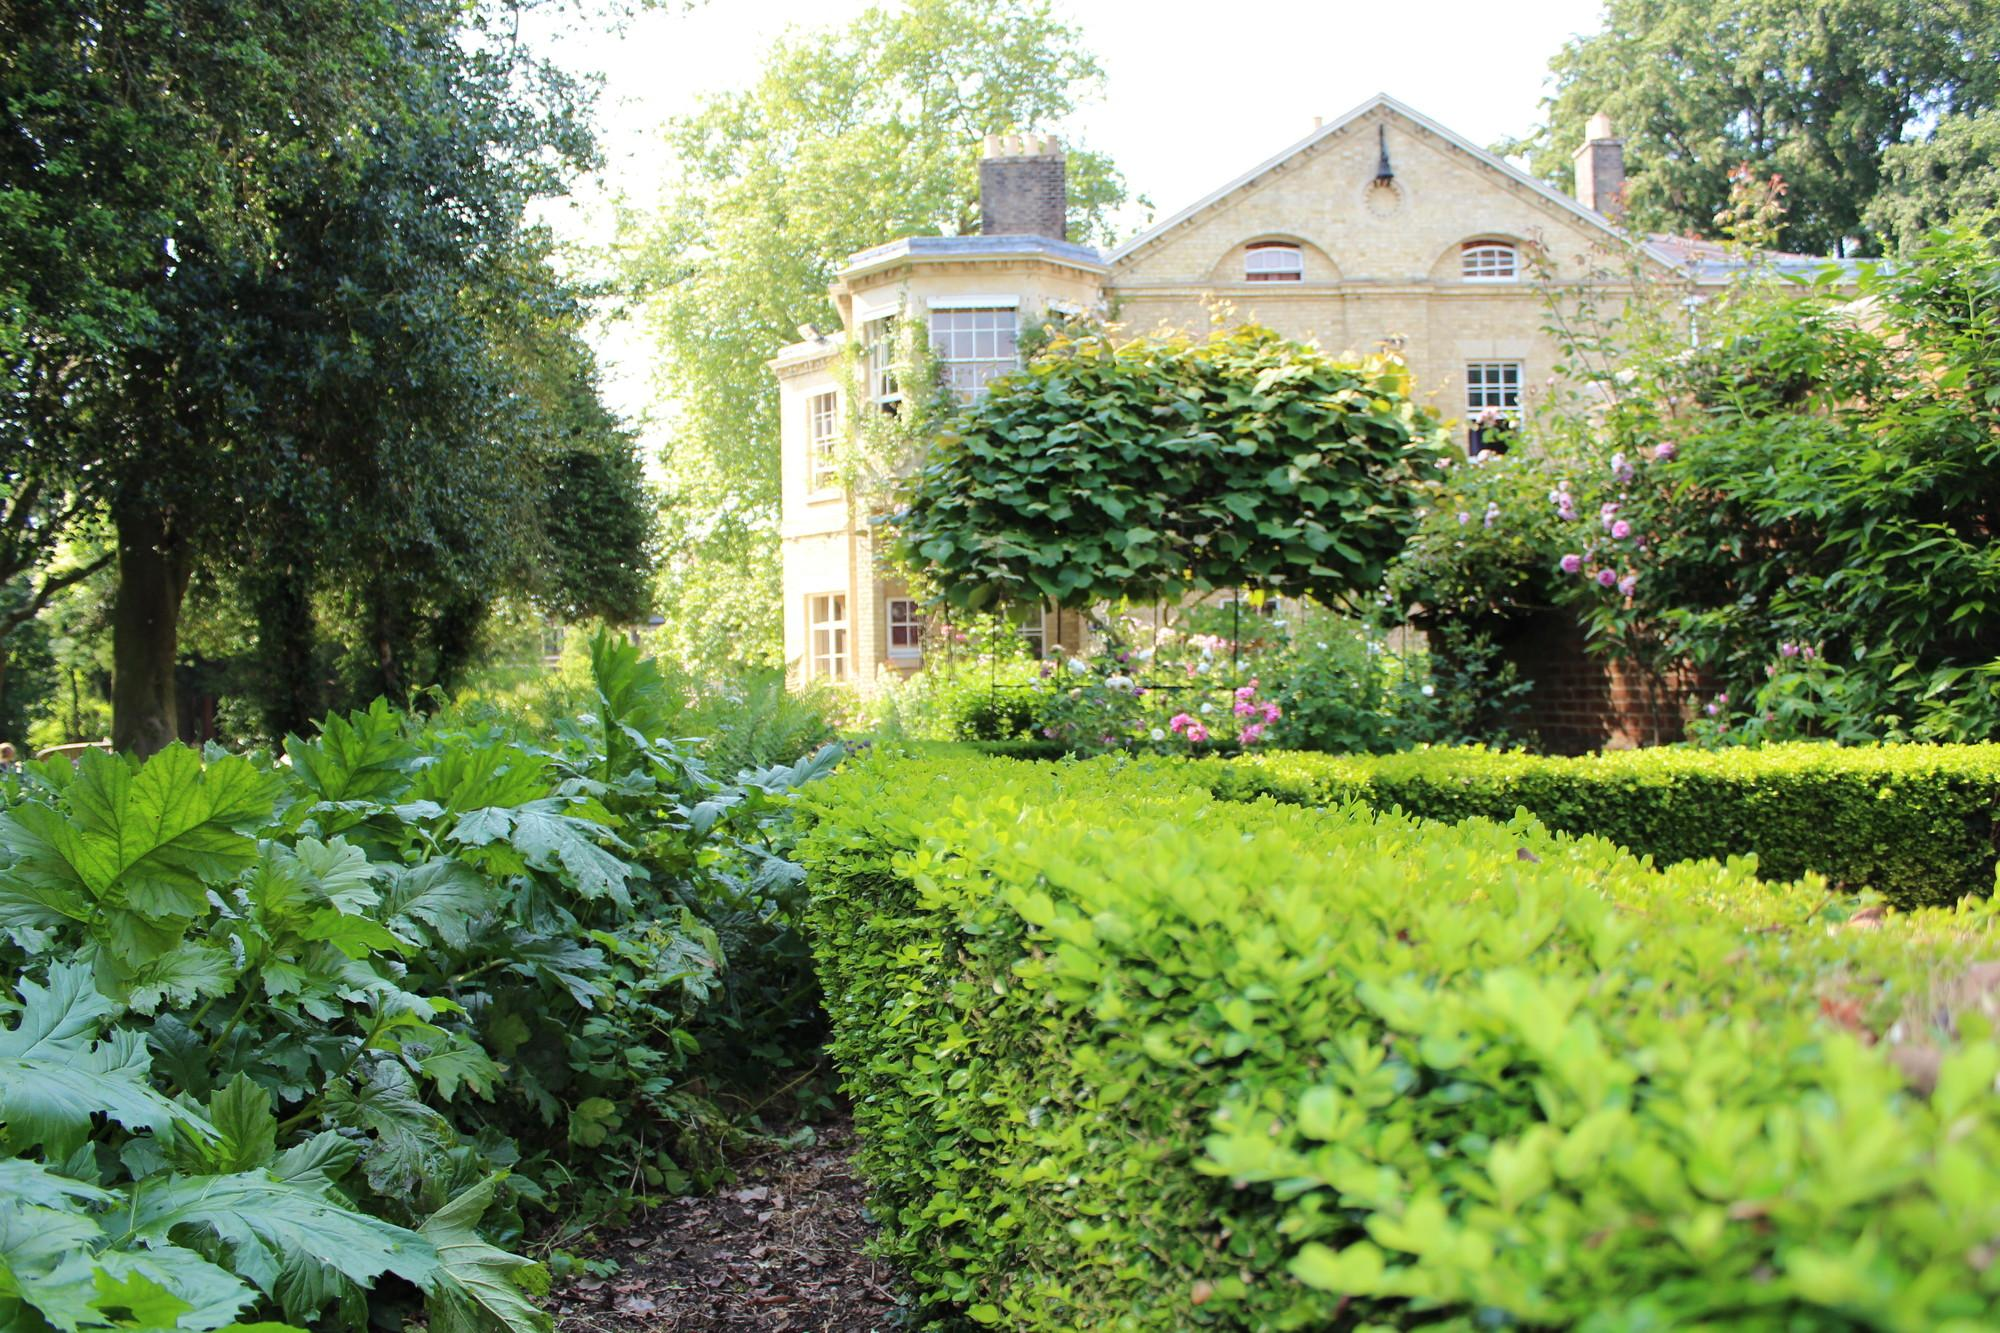 Gardens at Fitzwilliam College, Cambridge